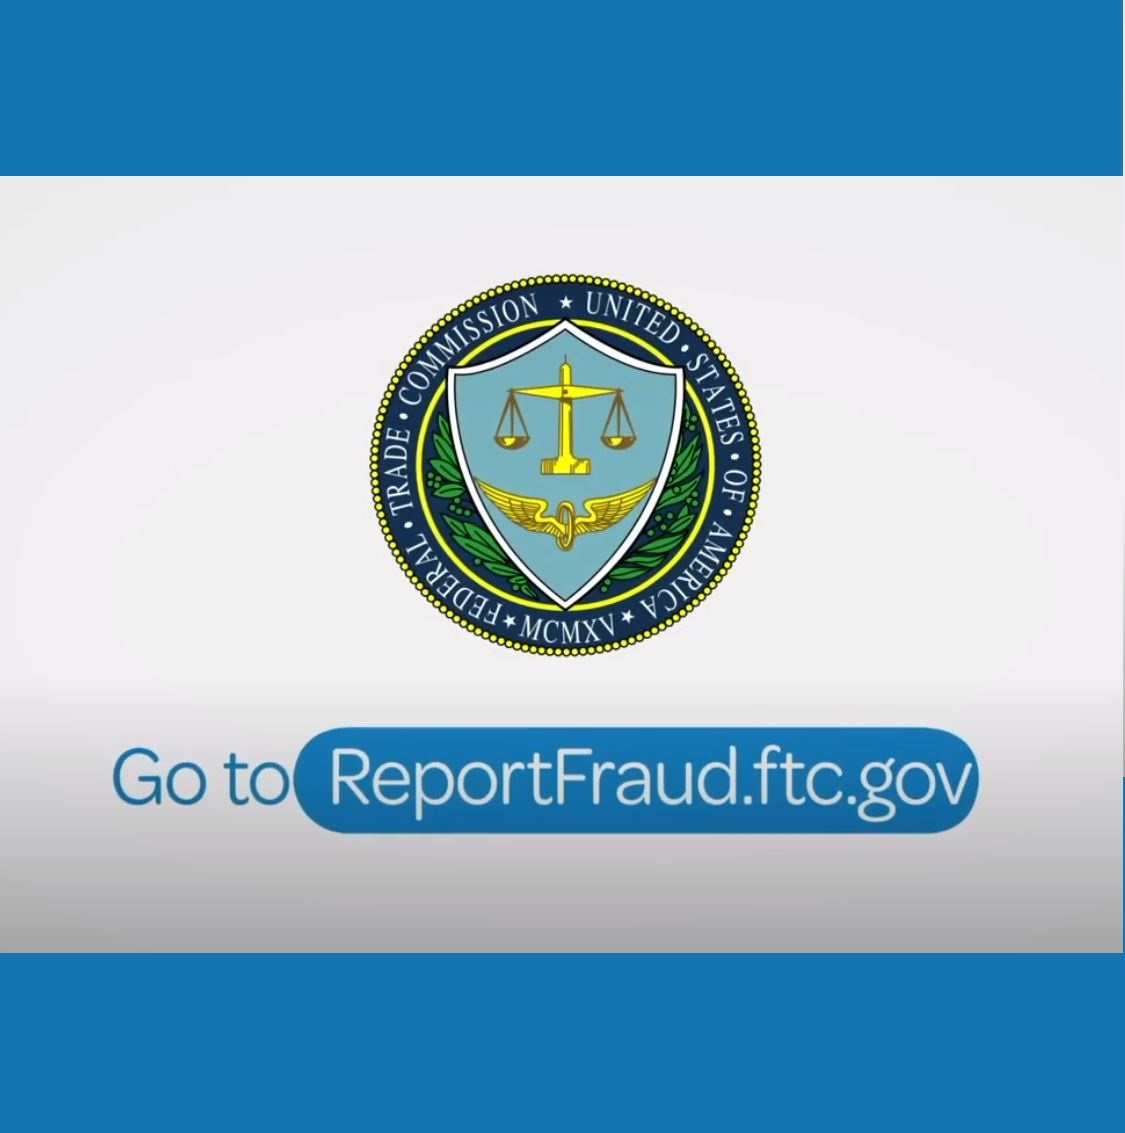 Why report fraud? image